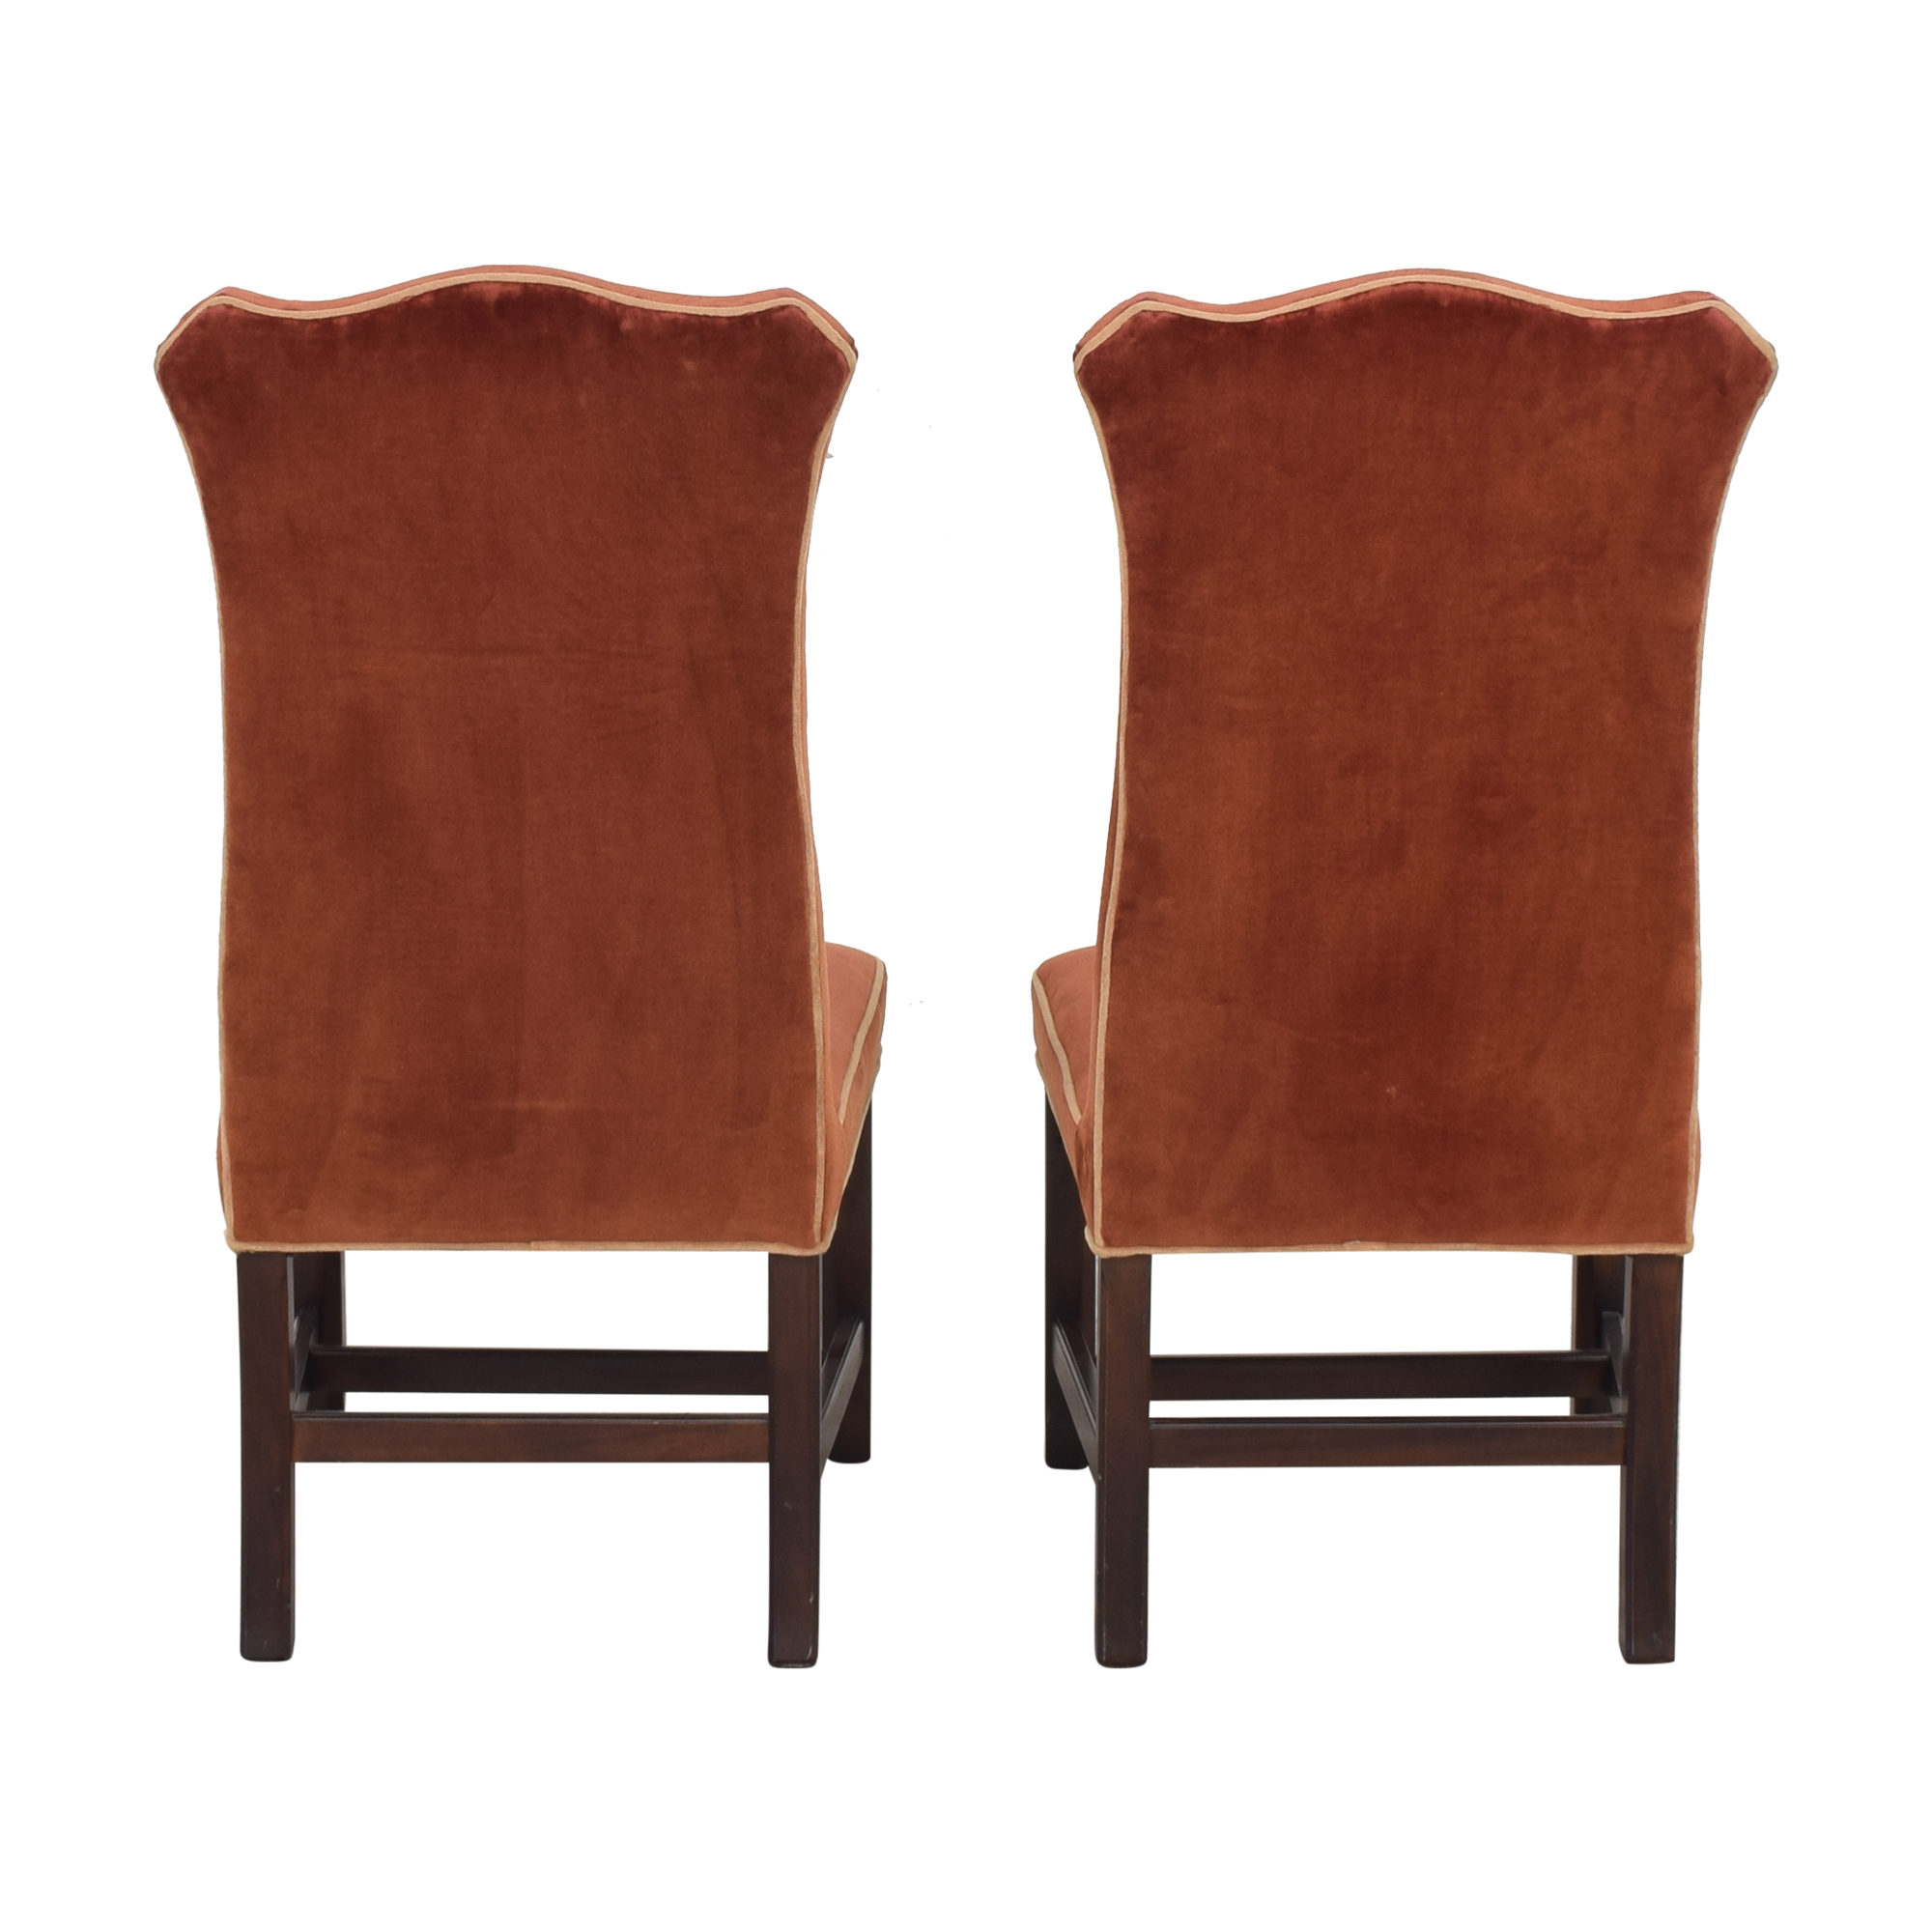 Ethan Allen Traditional Classics Upholstered Dining Chairs Ethan Allen